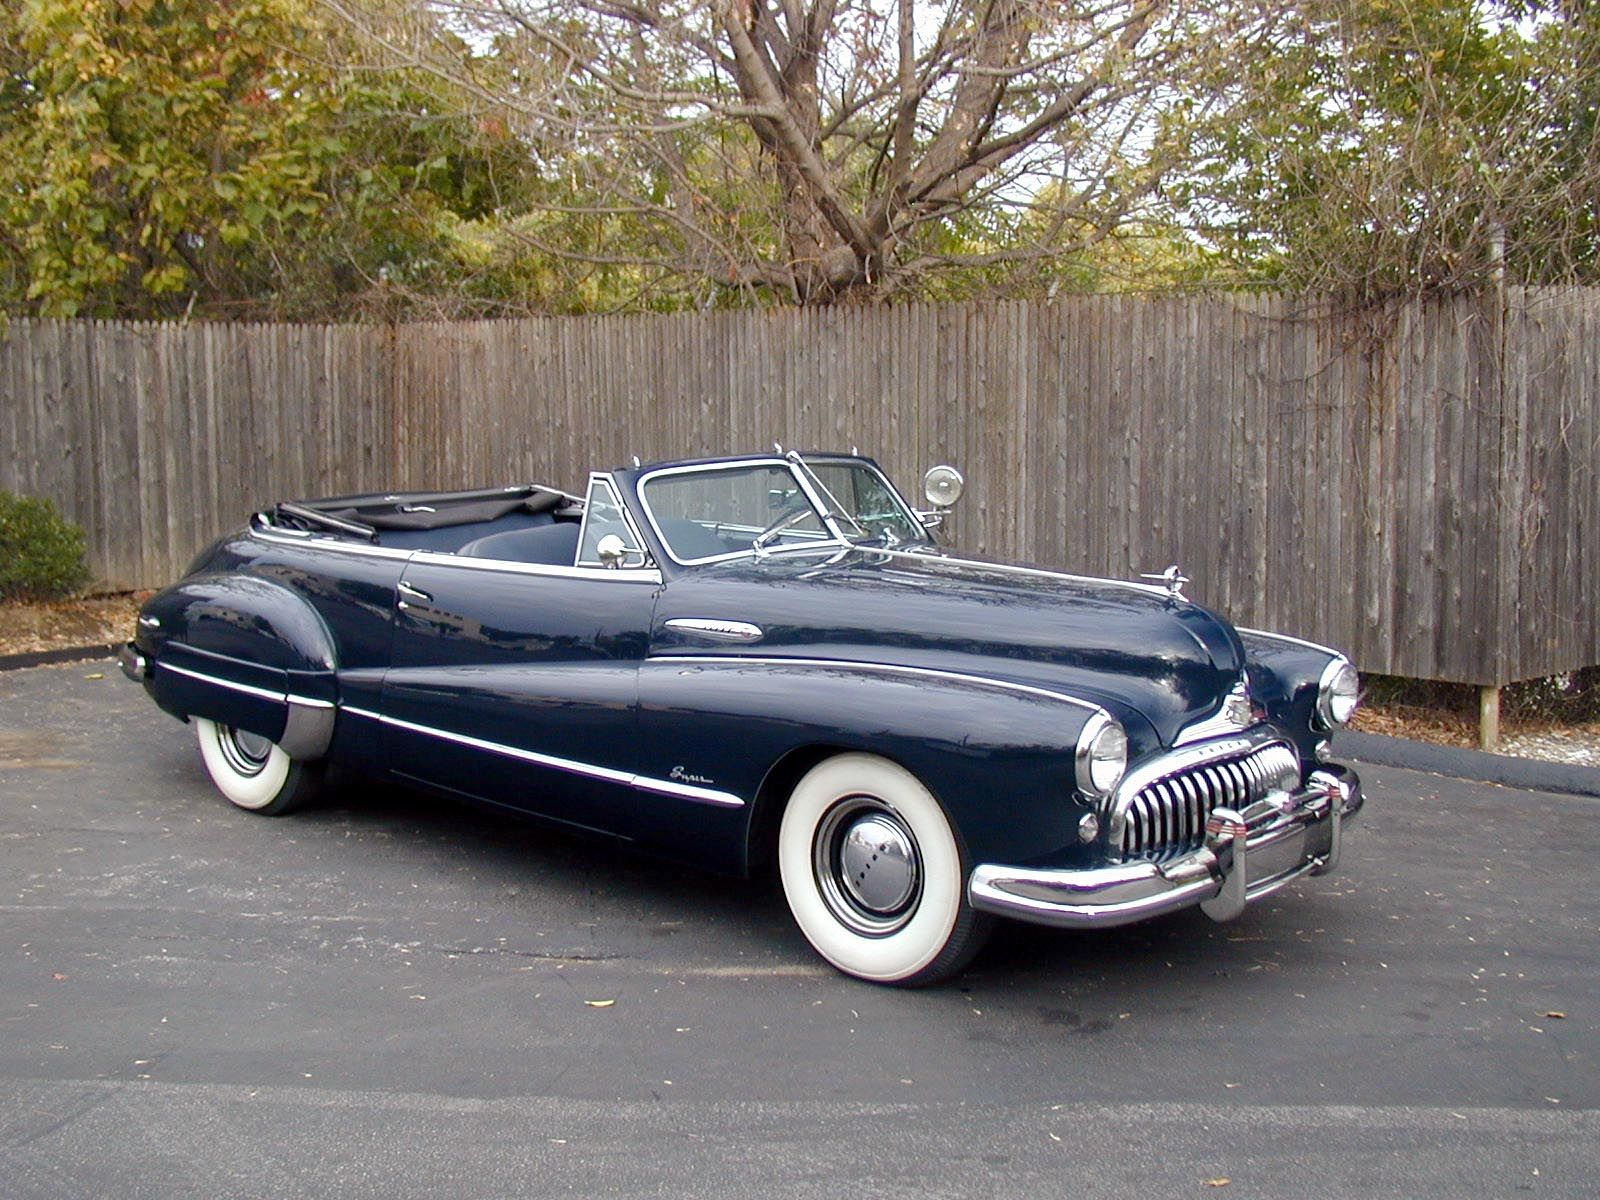 classic buick cabriolet -I have always love a coupe/cabriolet ...